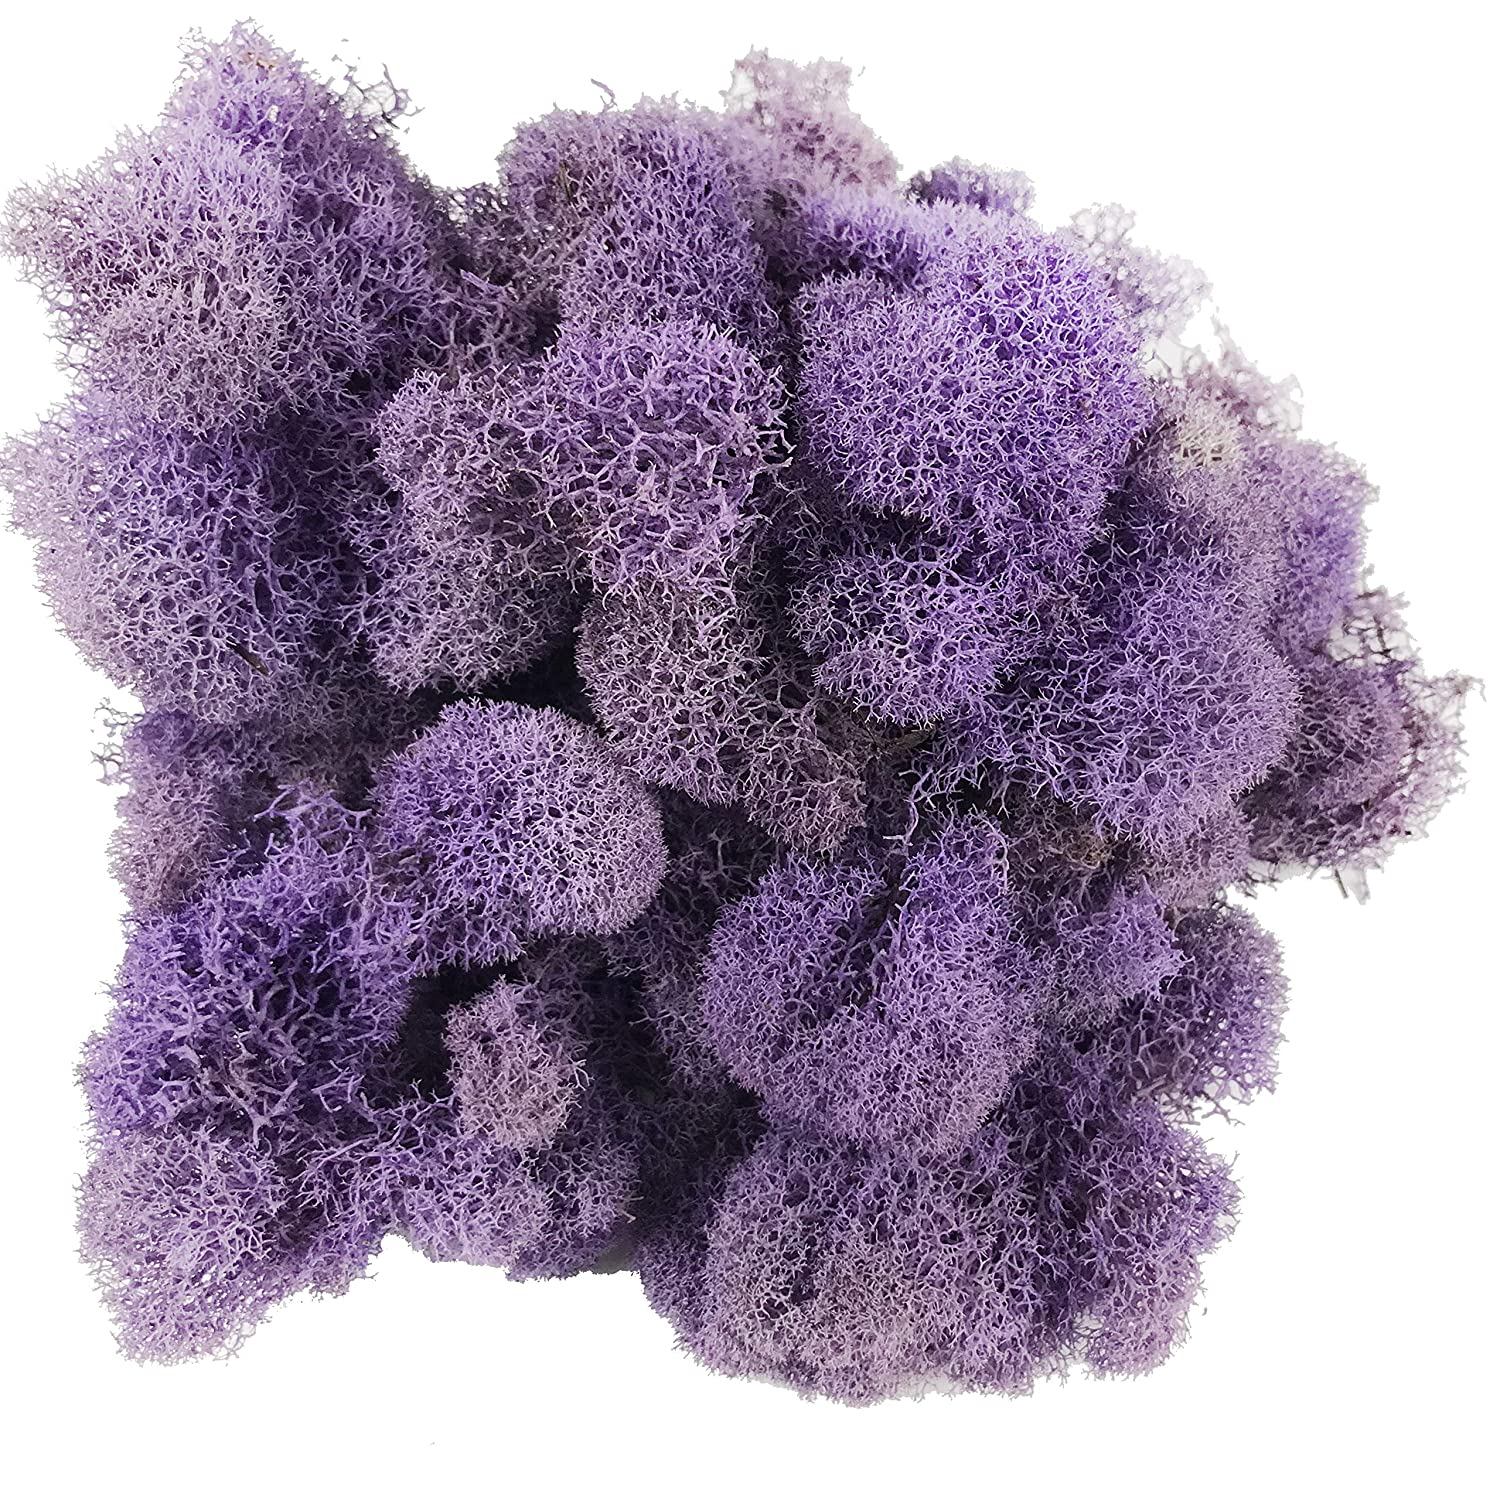 Pack of 2.5oz Purple Reindeer Moss Preserved Floral Moss